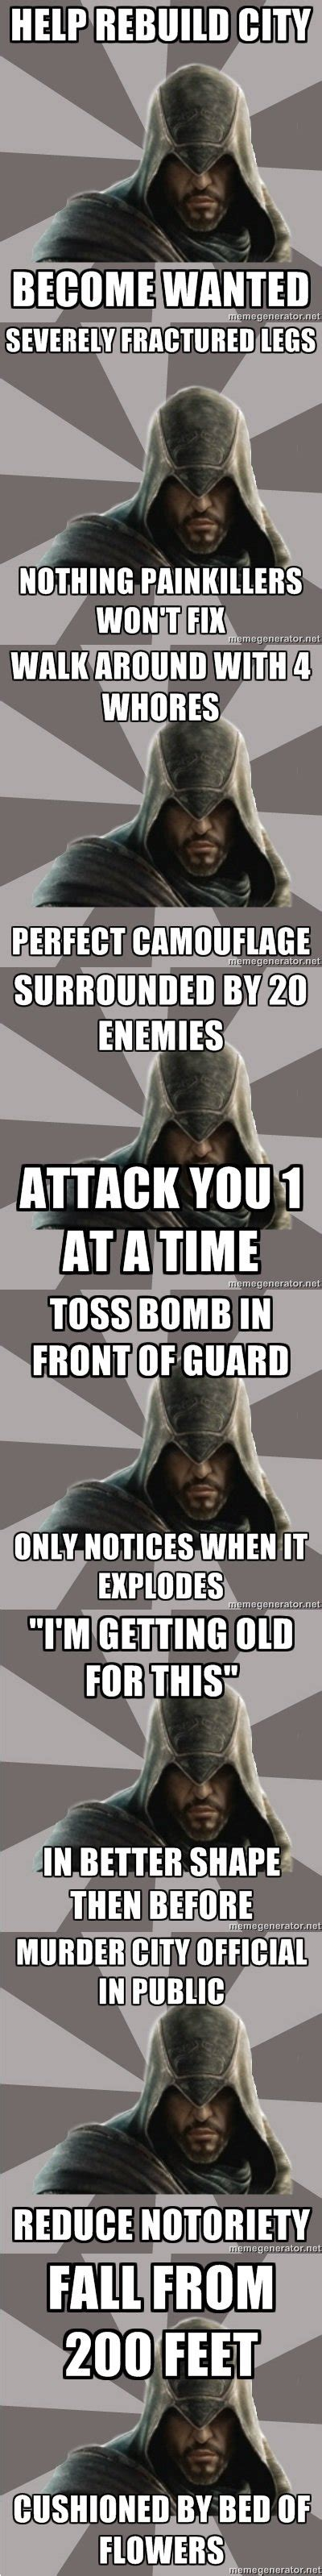 Assasins Creed Memes - assassin s creed memes henchman 4 hire